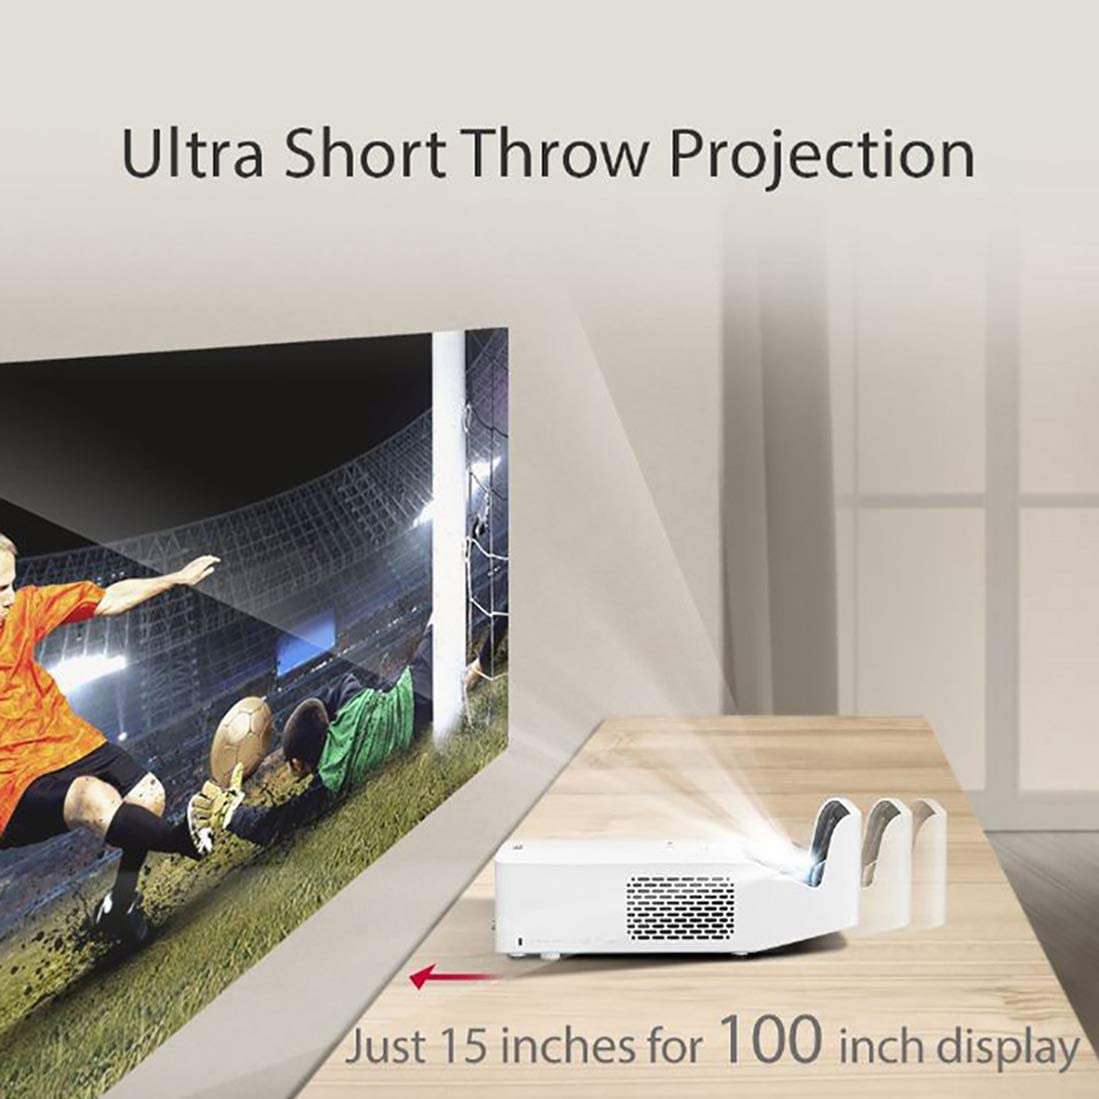 LG HF65LA Ultra Short Throw LED Home Theater CineBeam Projector with Smart TV and Bluetooth Sound Out